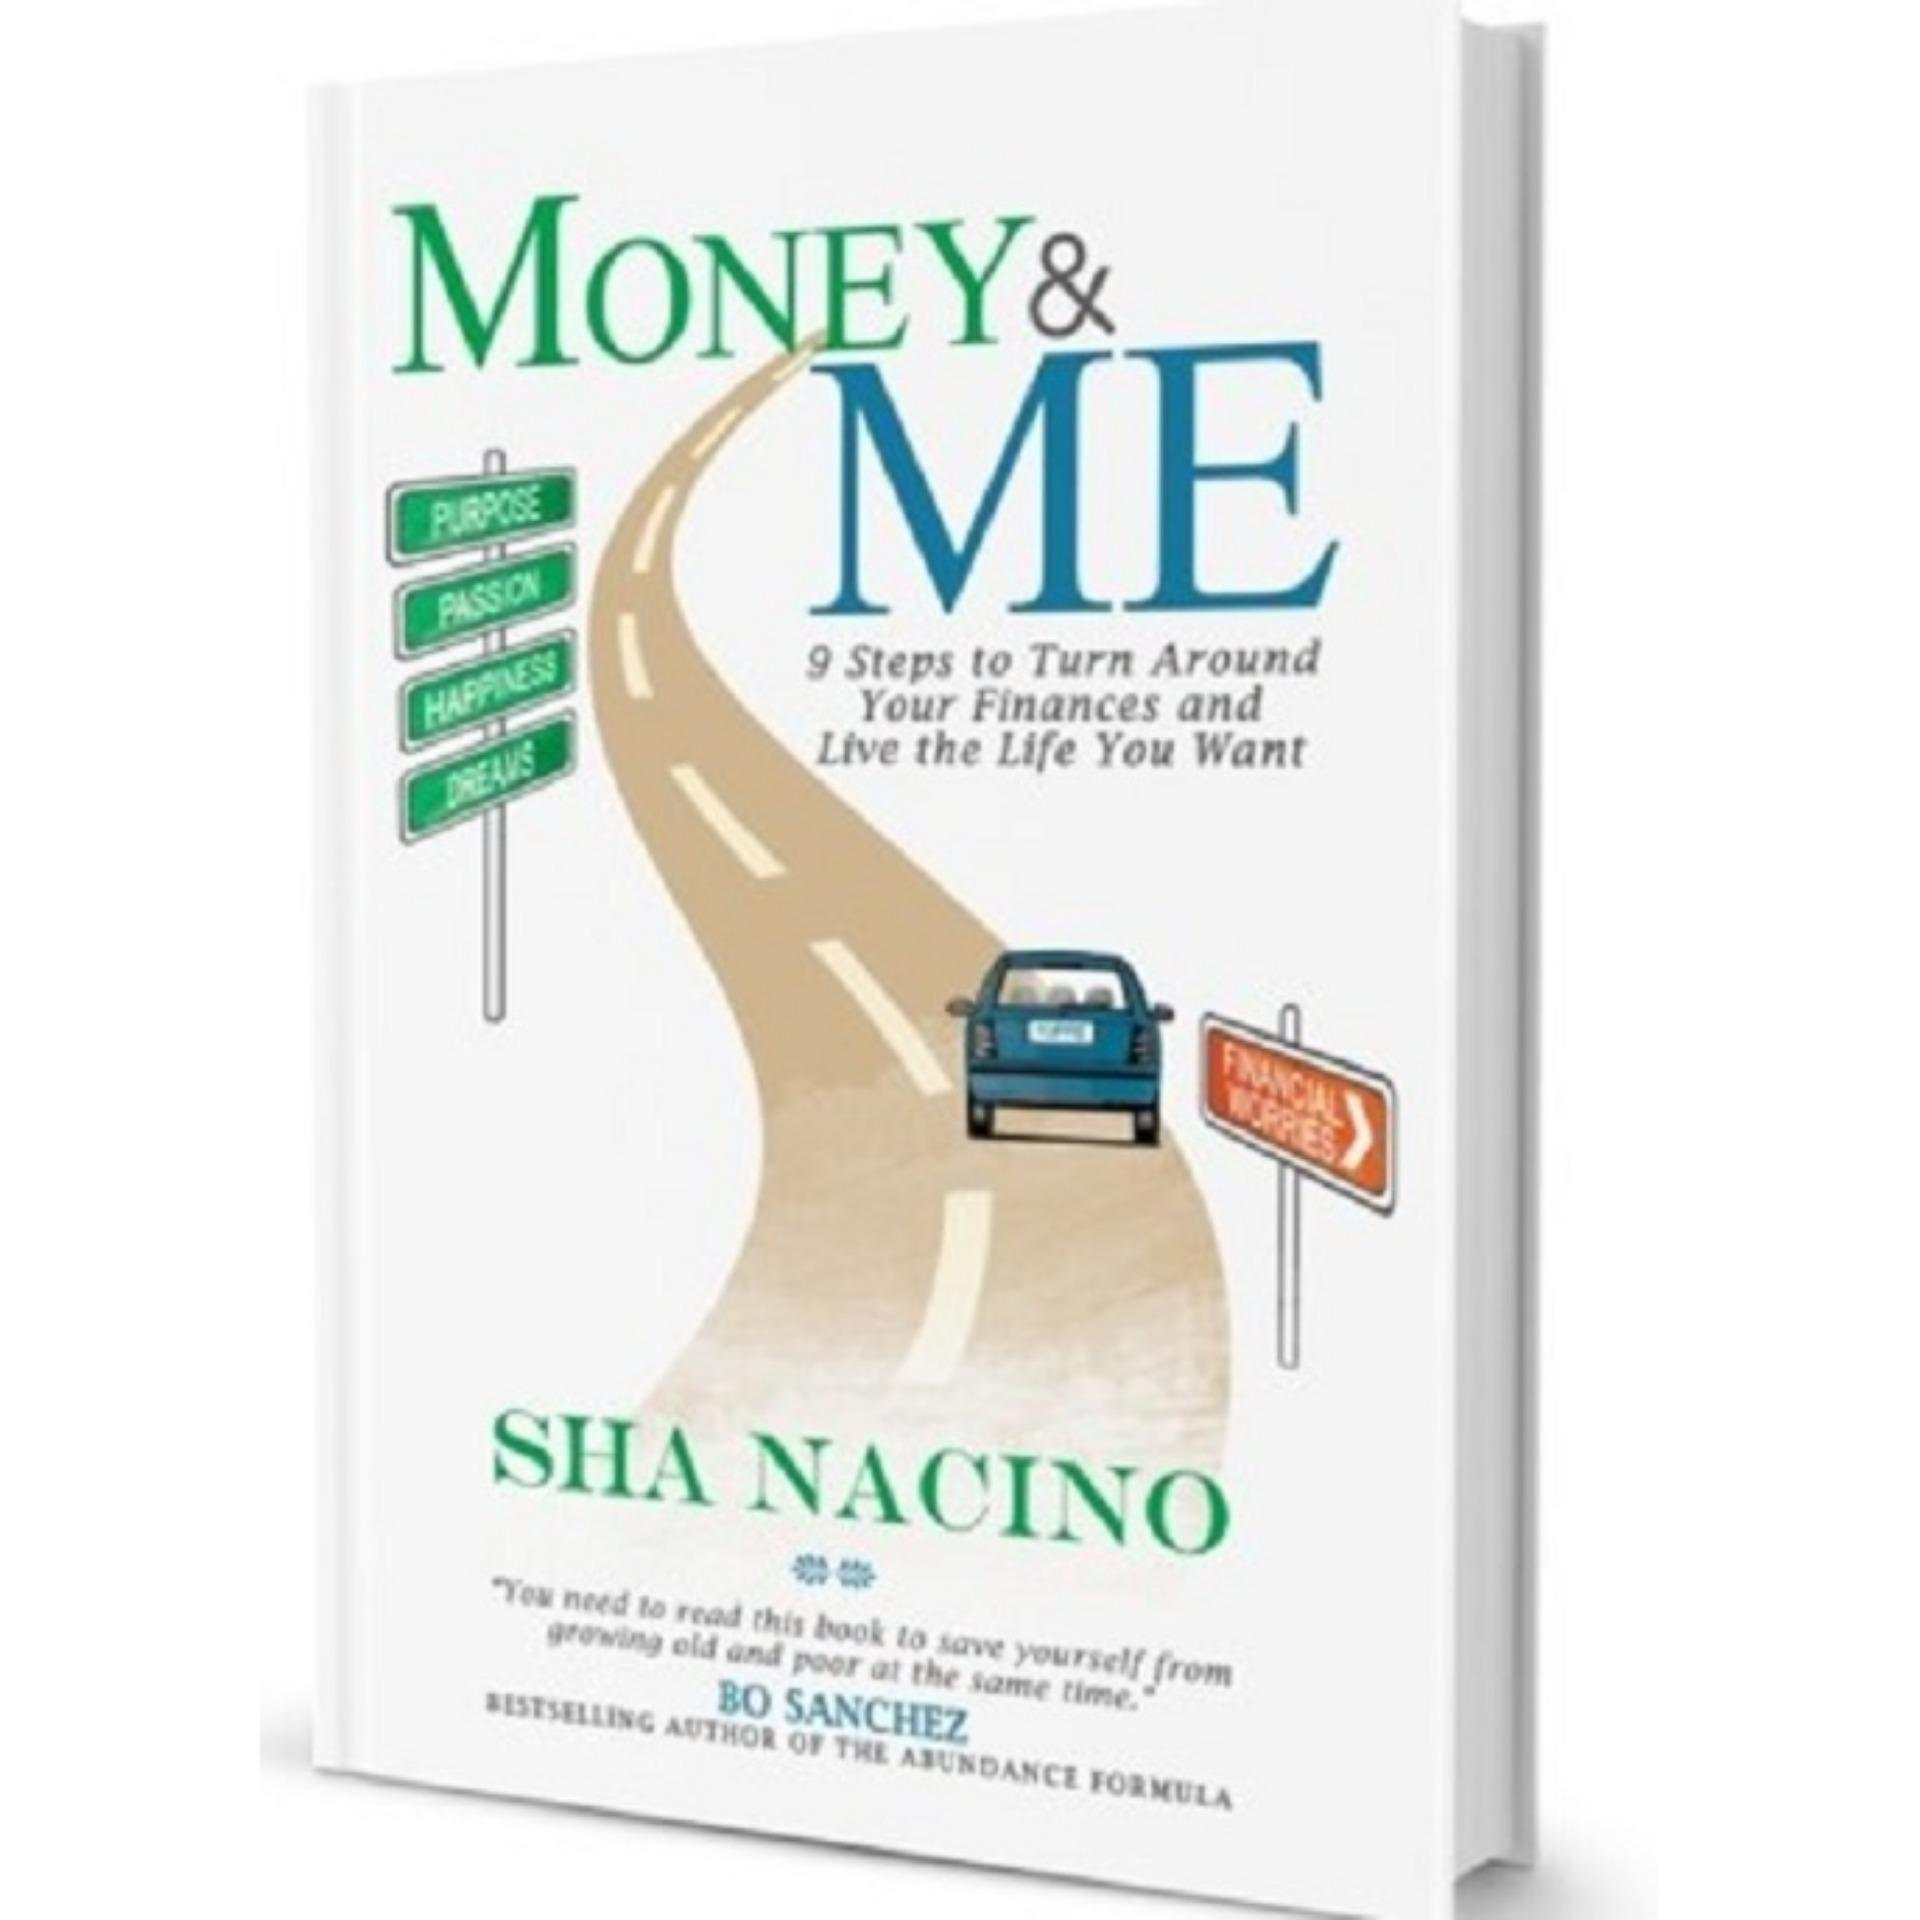 Local e books for sale philippine e books best seller prices kerygma books money and me by sha nacino paperback 1pc fandeluxe Gallery